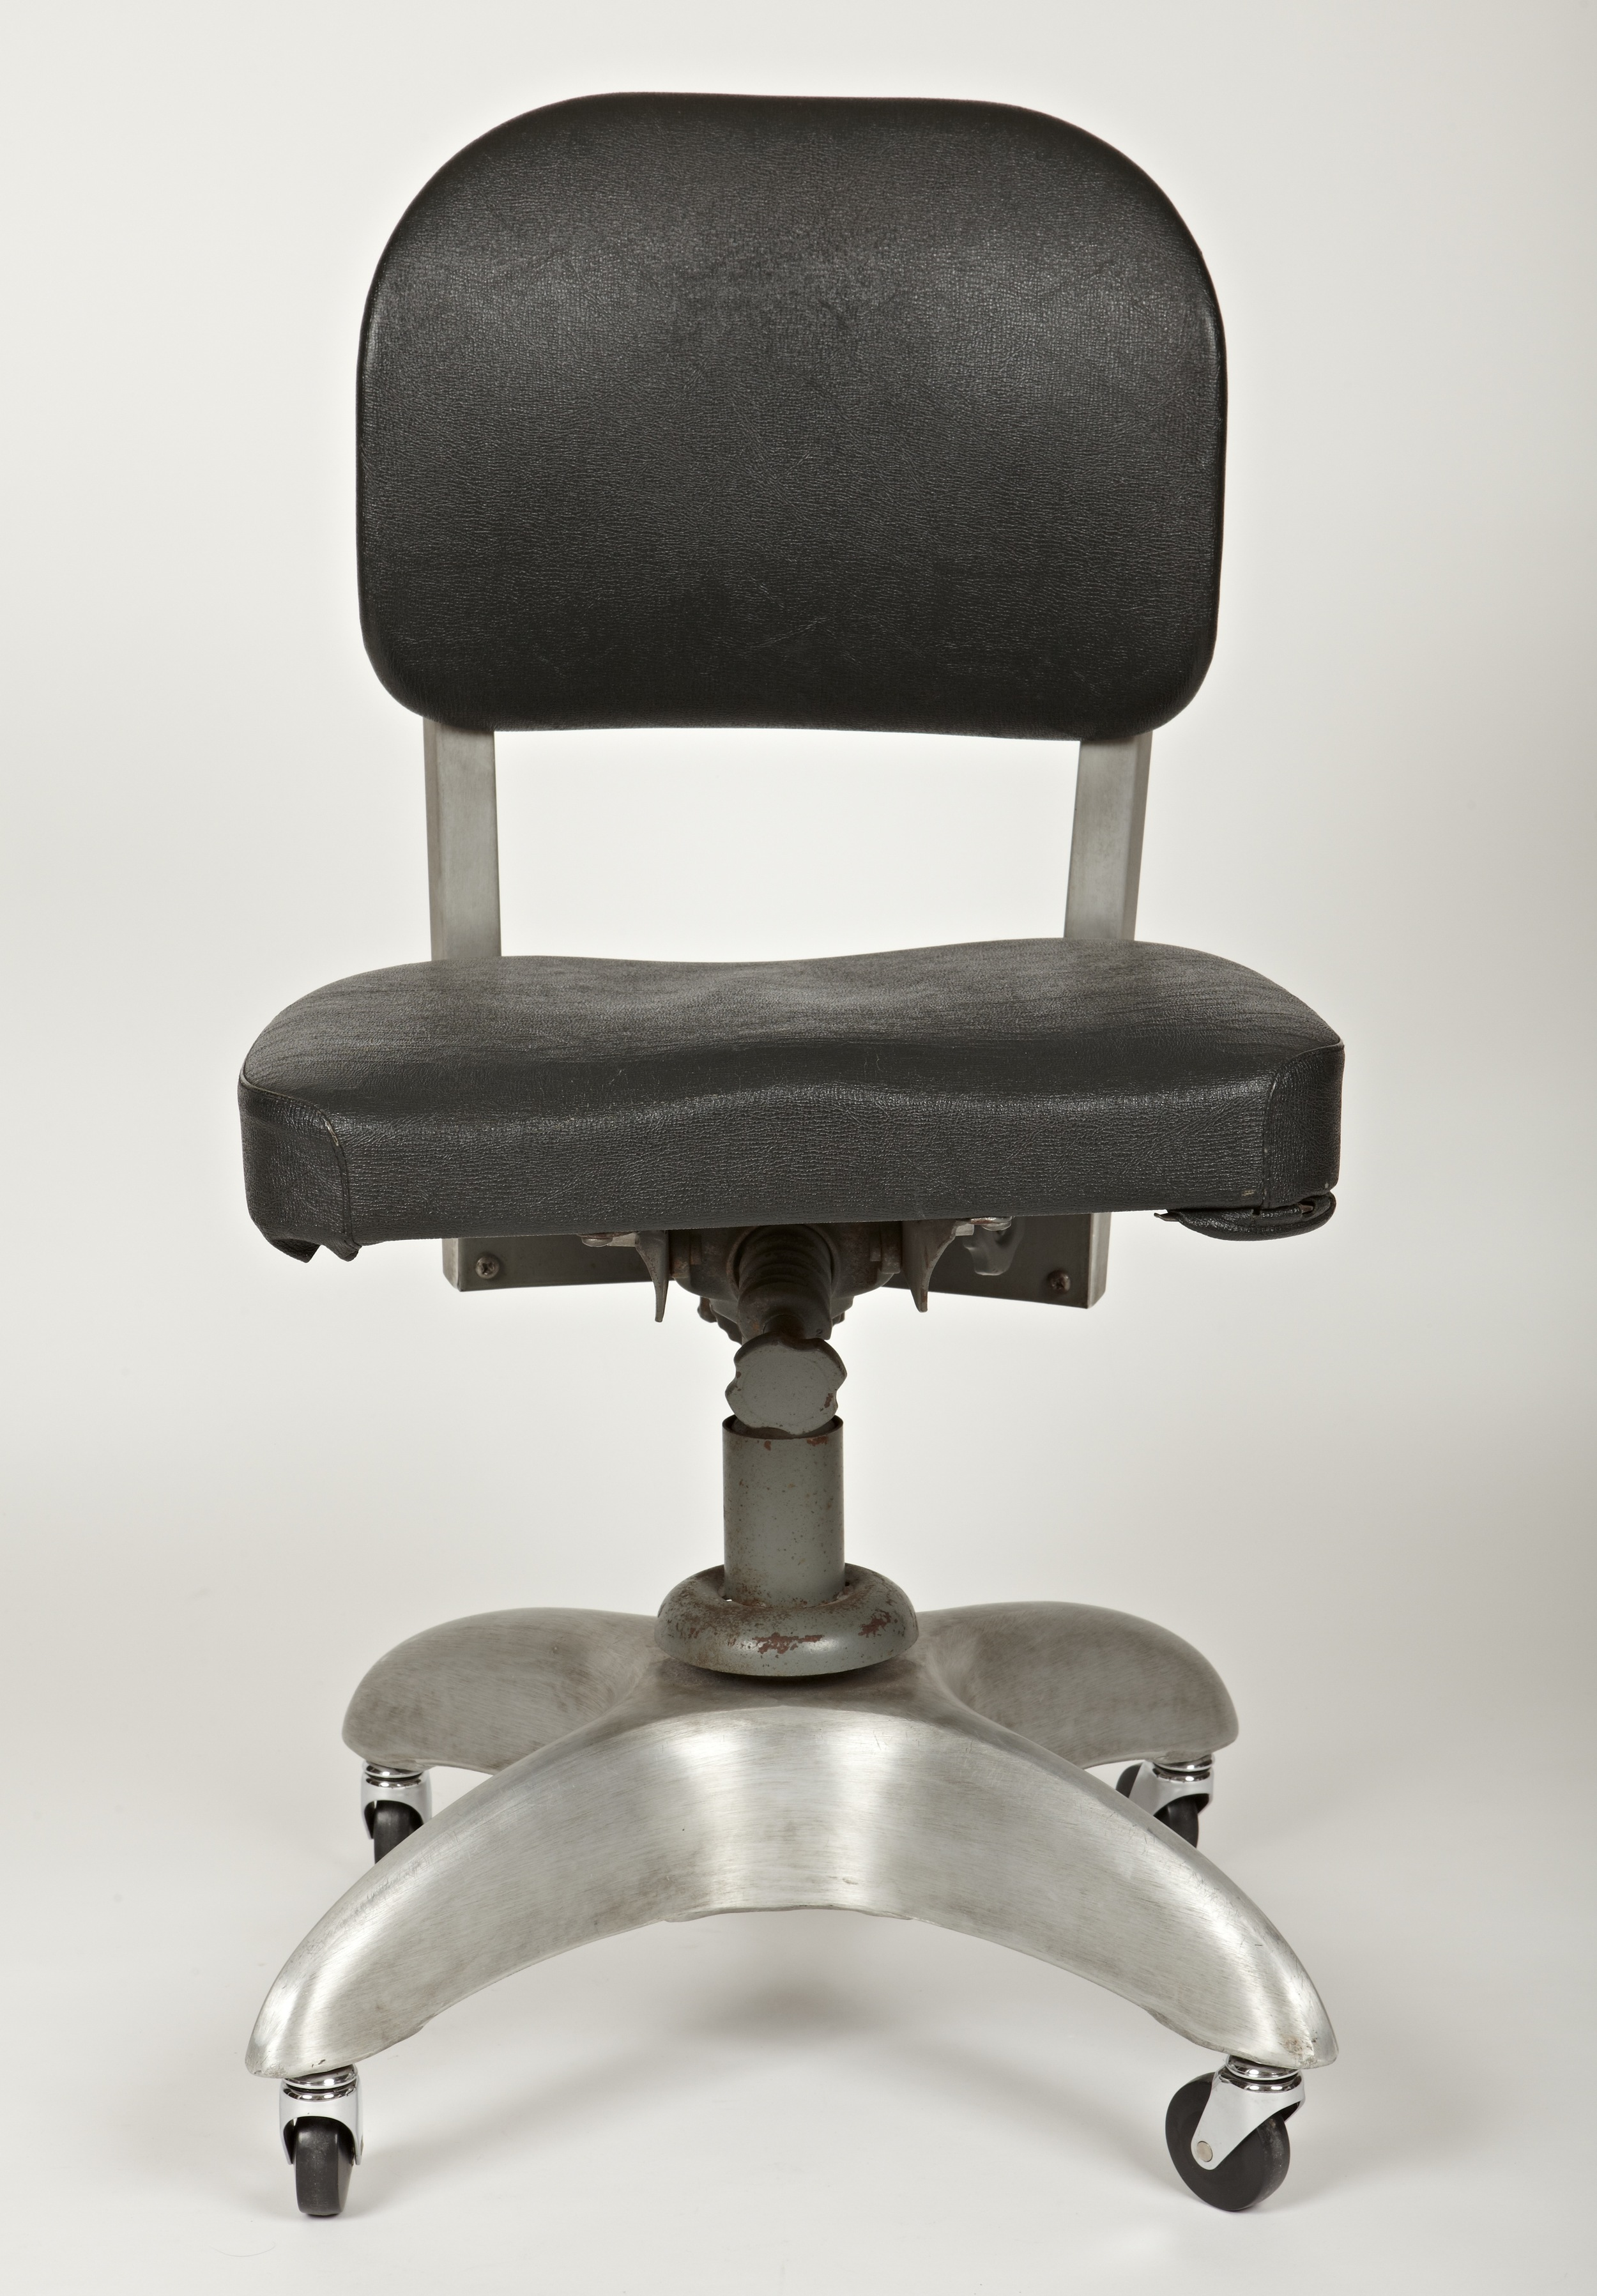 desk chair york queen rental good form raji rm interior designer washington dc rma0134201 jpg